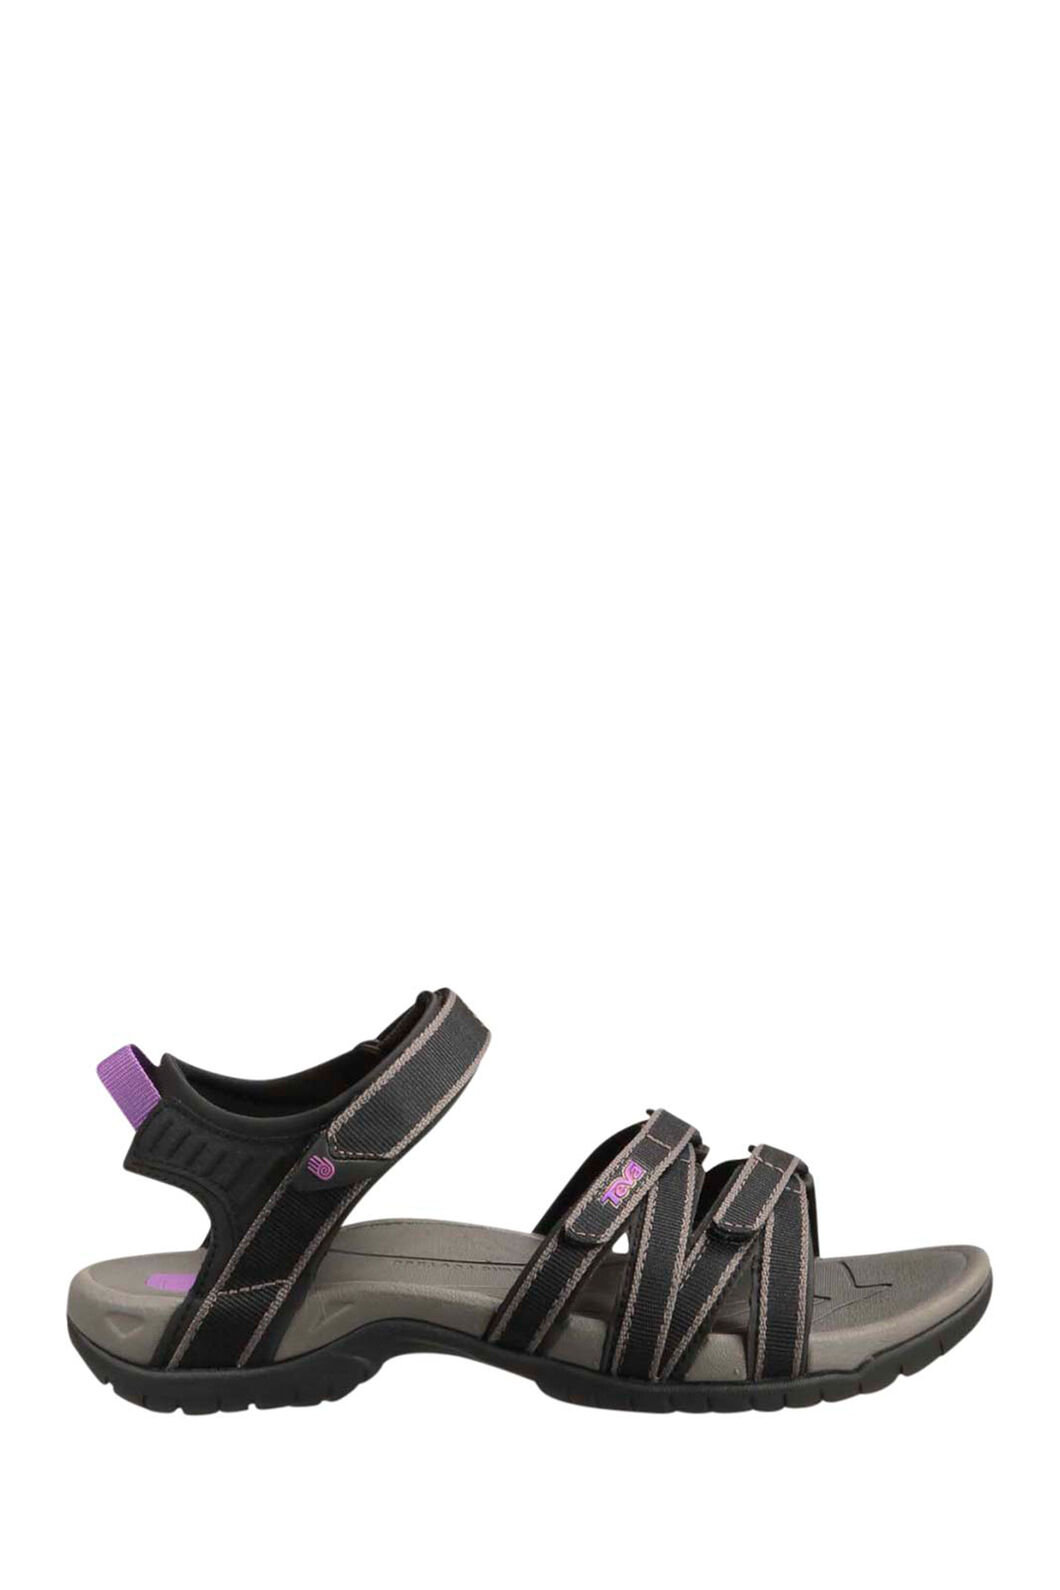 Teva Tirra Sandals — Women's, Black/Grey, hi-res